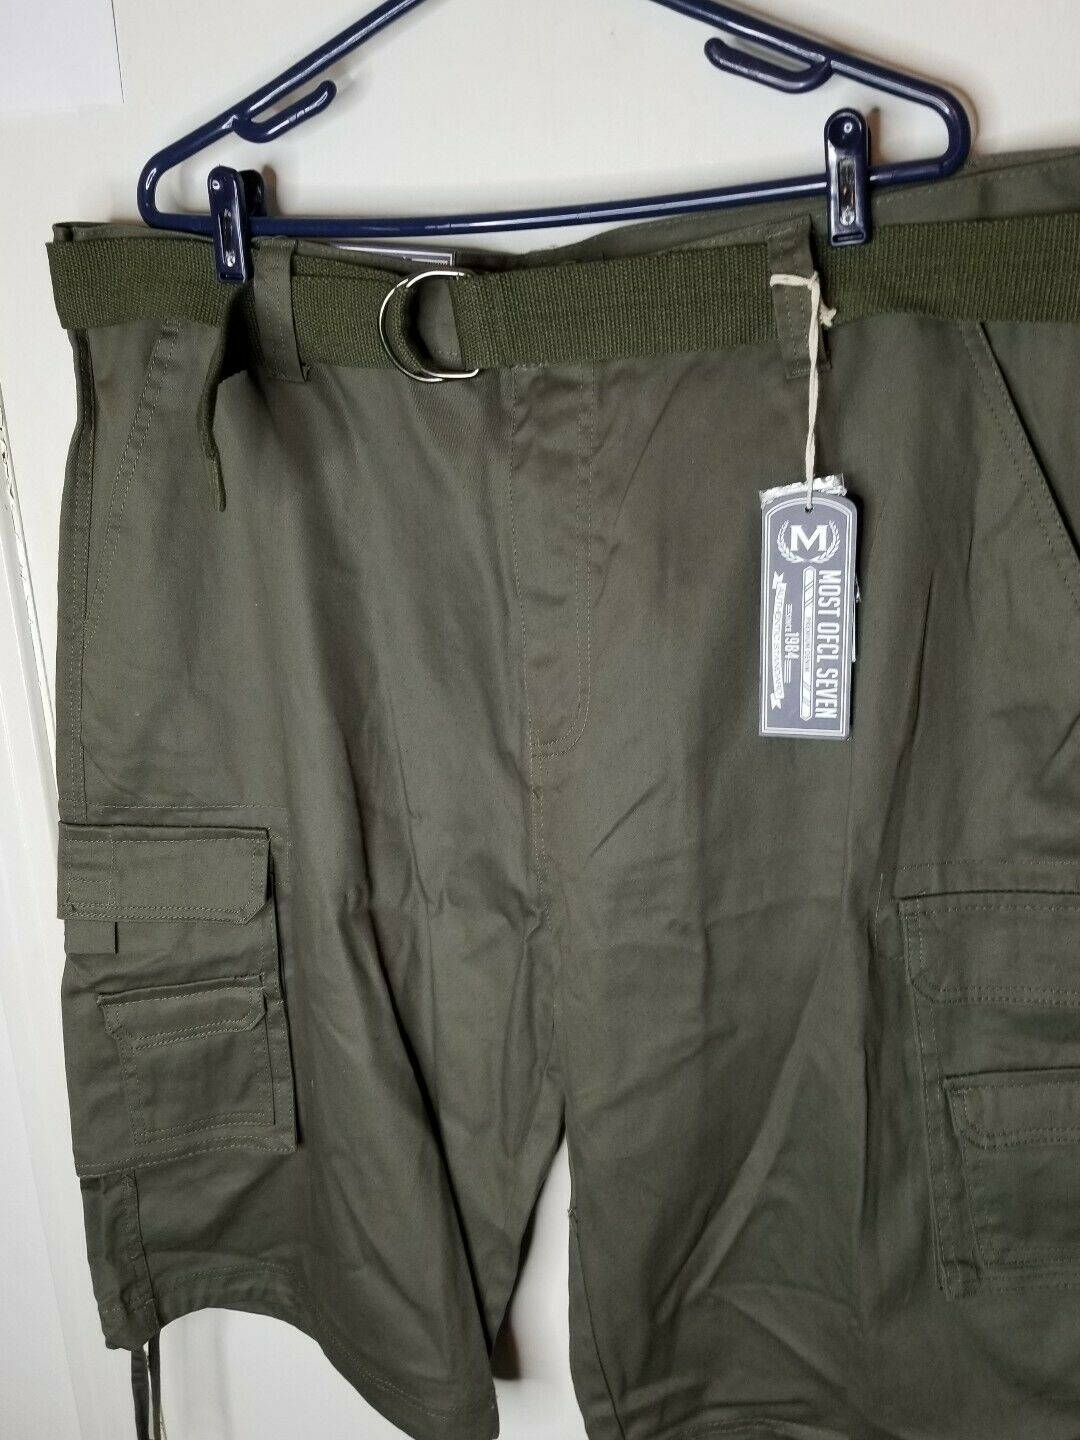 Most Official Seven MO7 Mens Olive Green Cargo Shorts Sz 44 MSRP  NEW